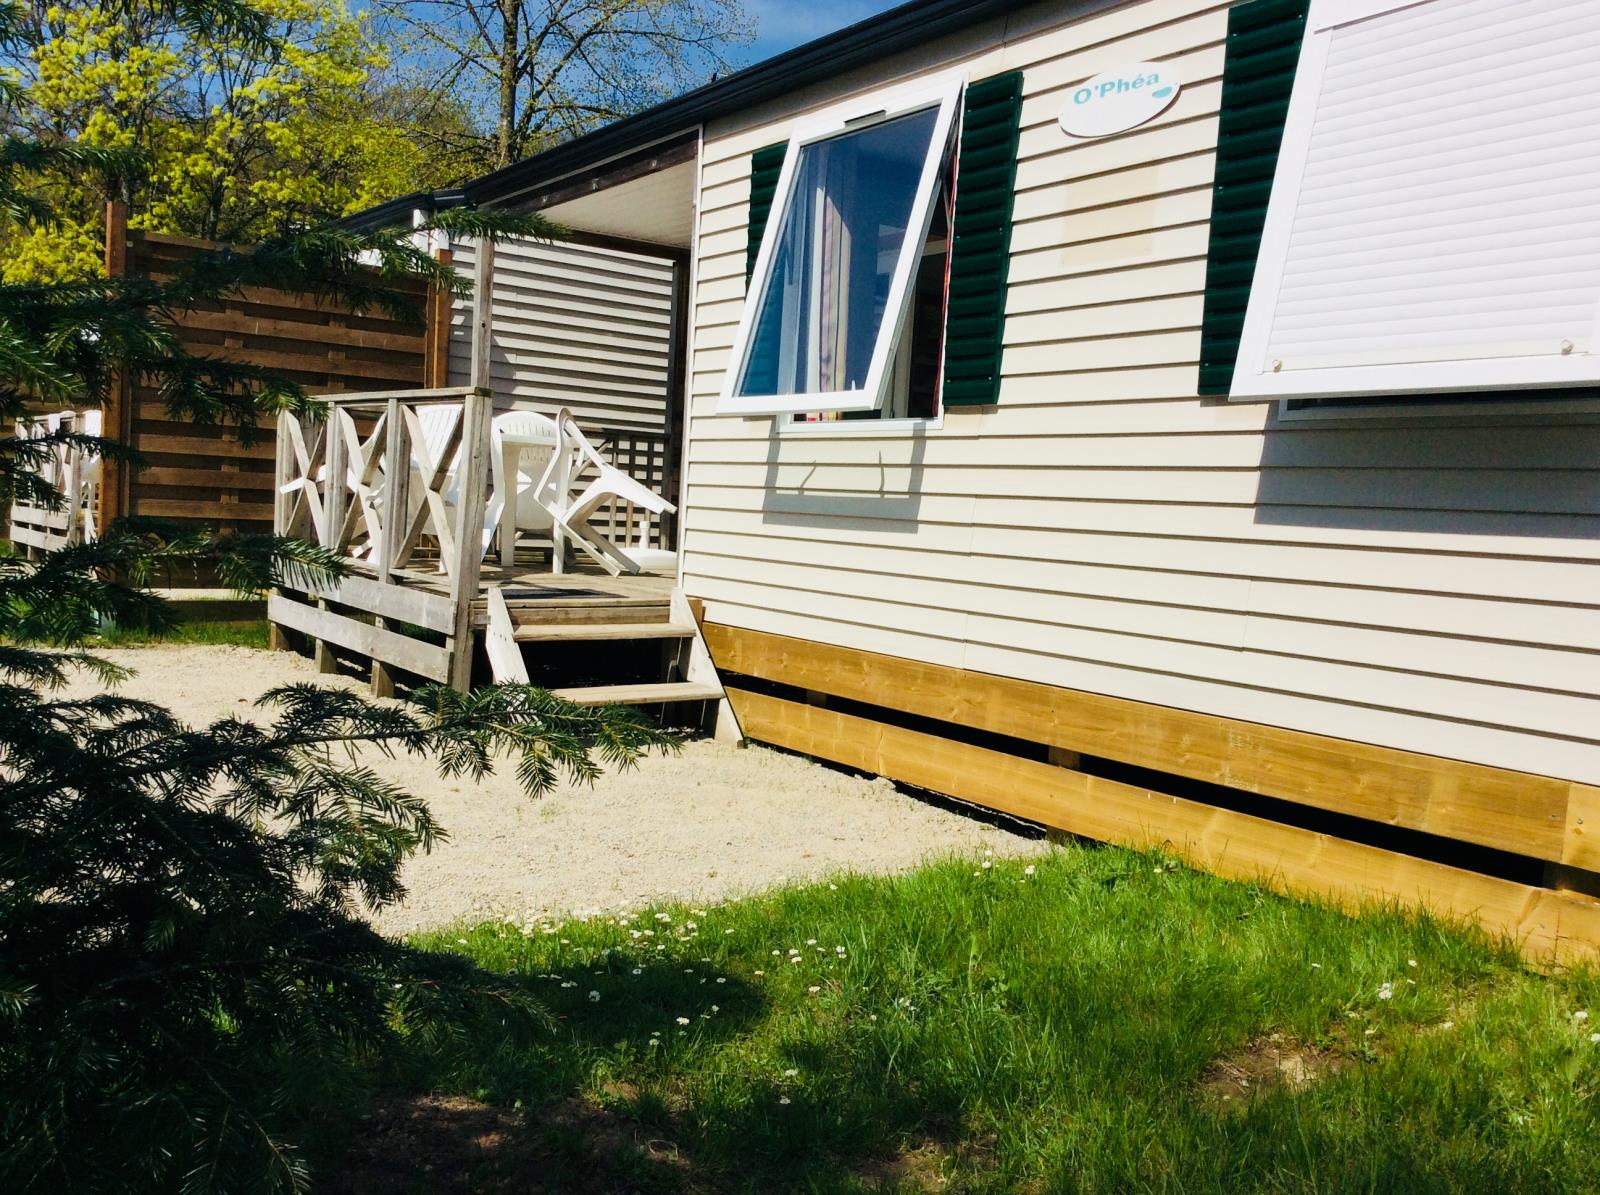 Mobilhome N°8 - 2 Chambres Cabine - Terrasse